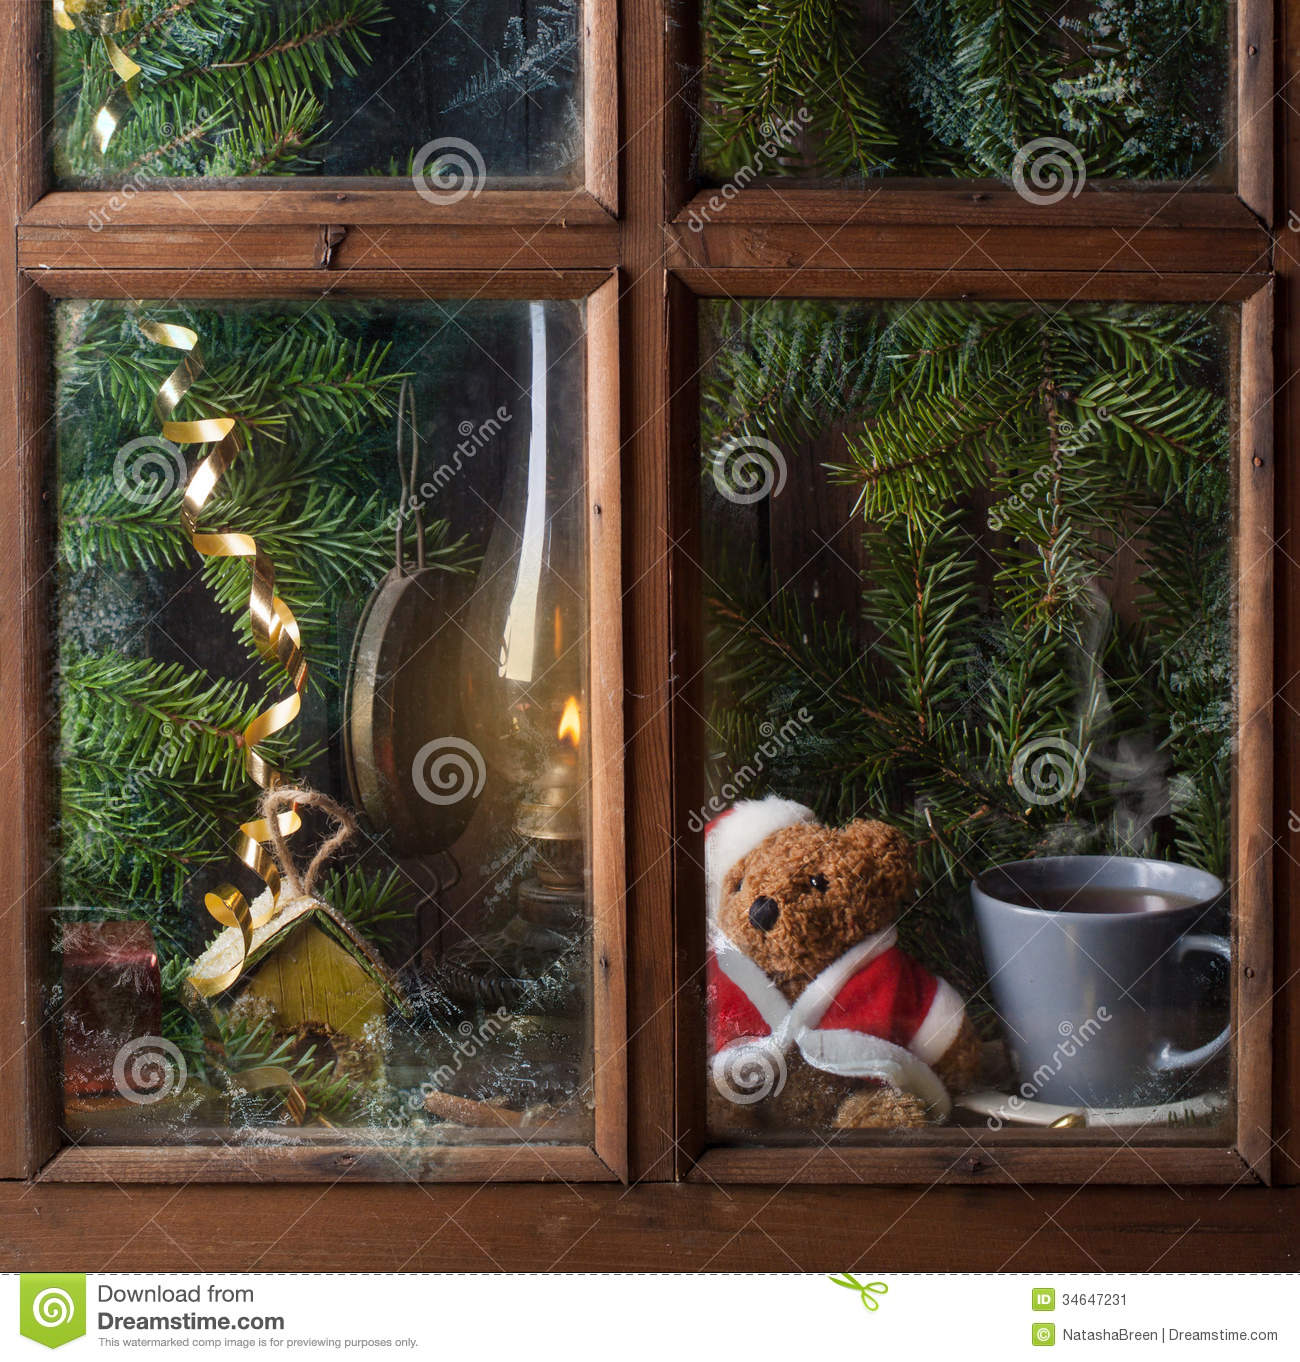 Christmas decoration with teddy bear in window stock image for Decoration de fenetre pour noel